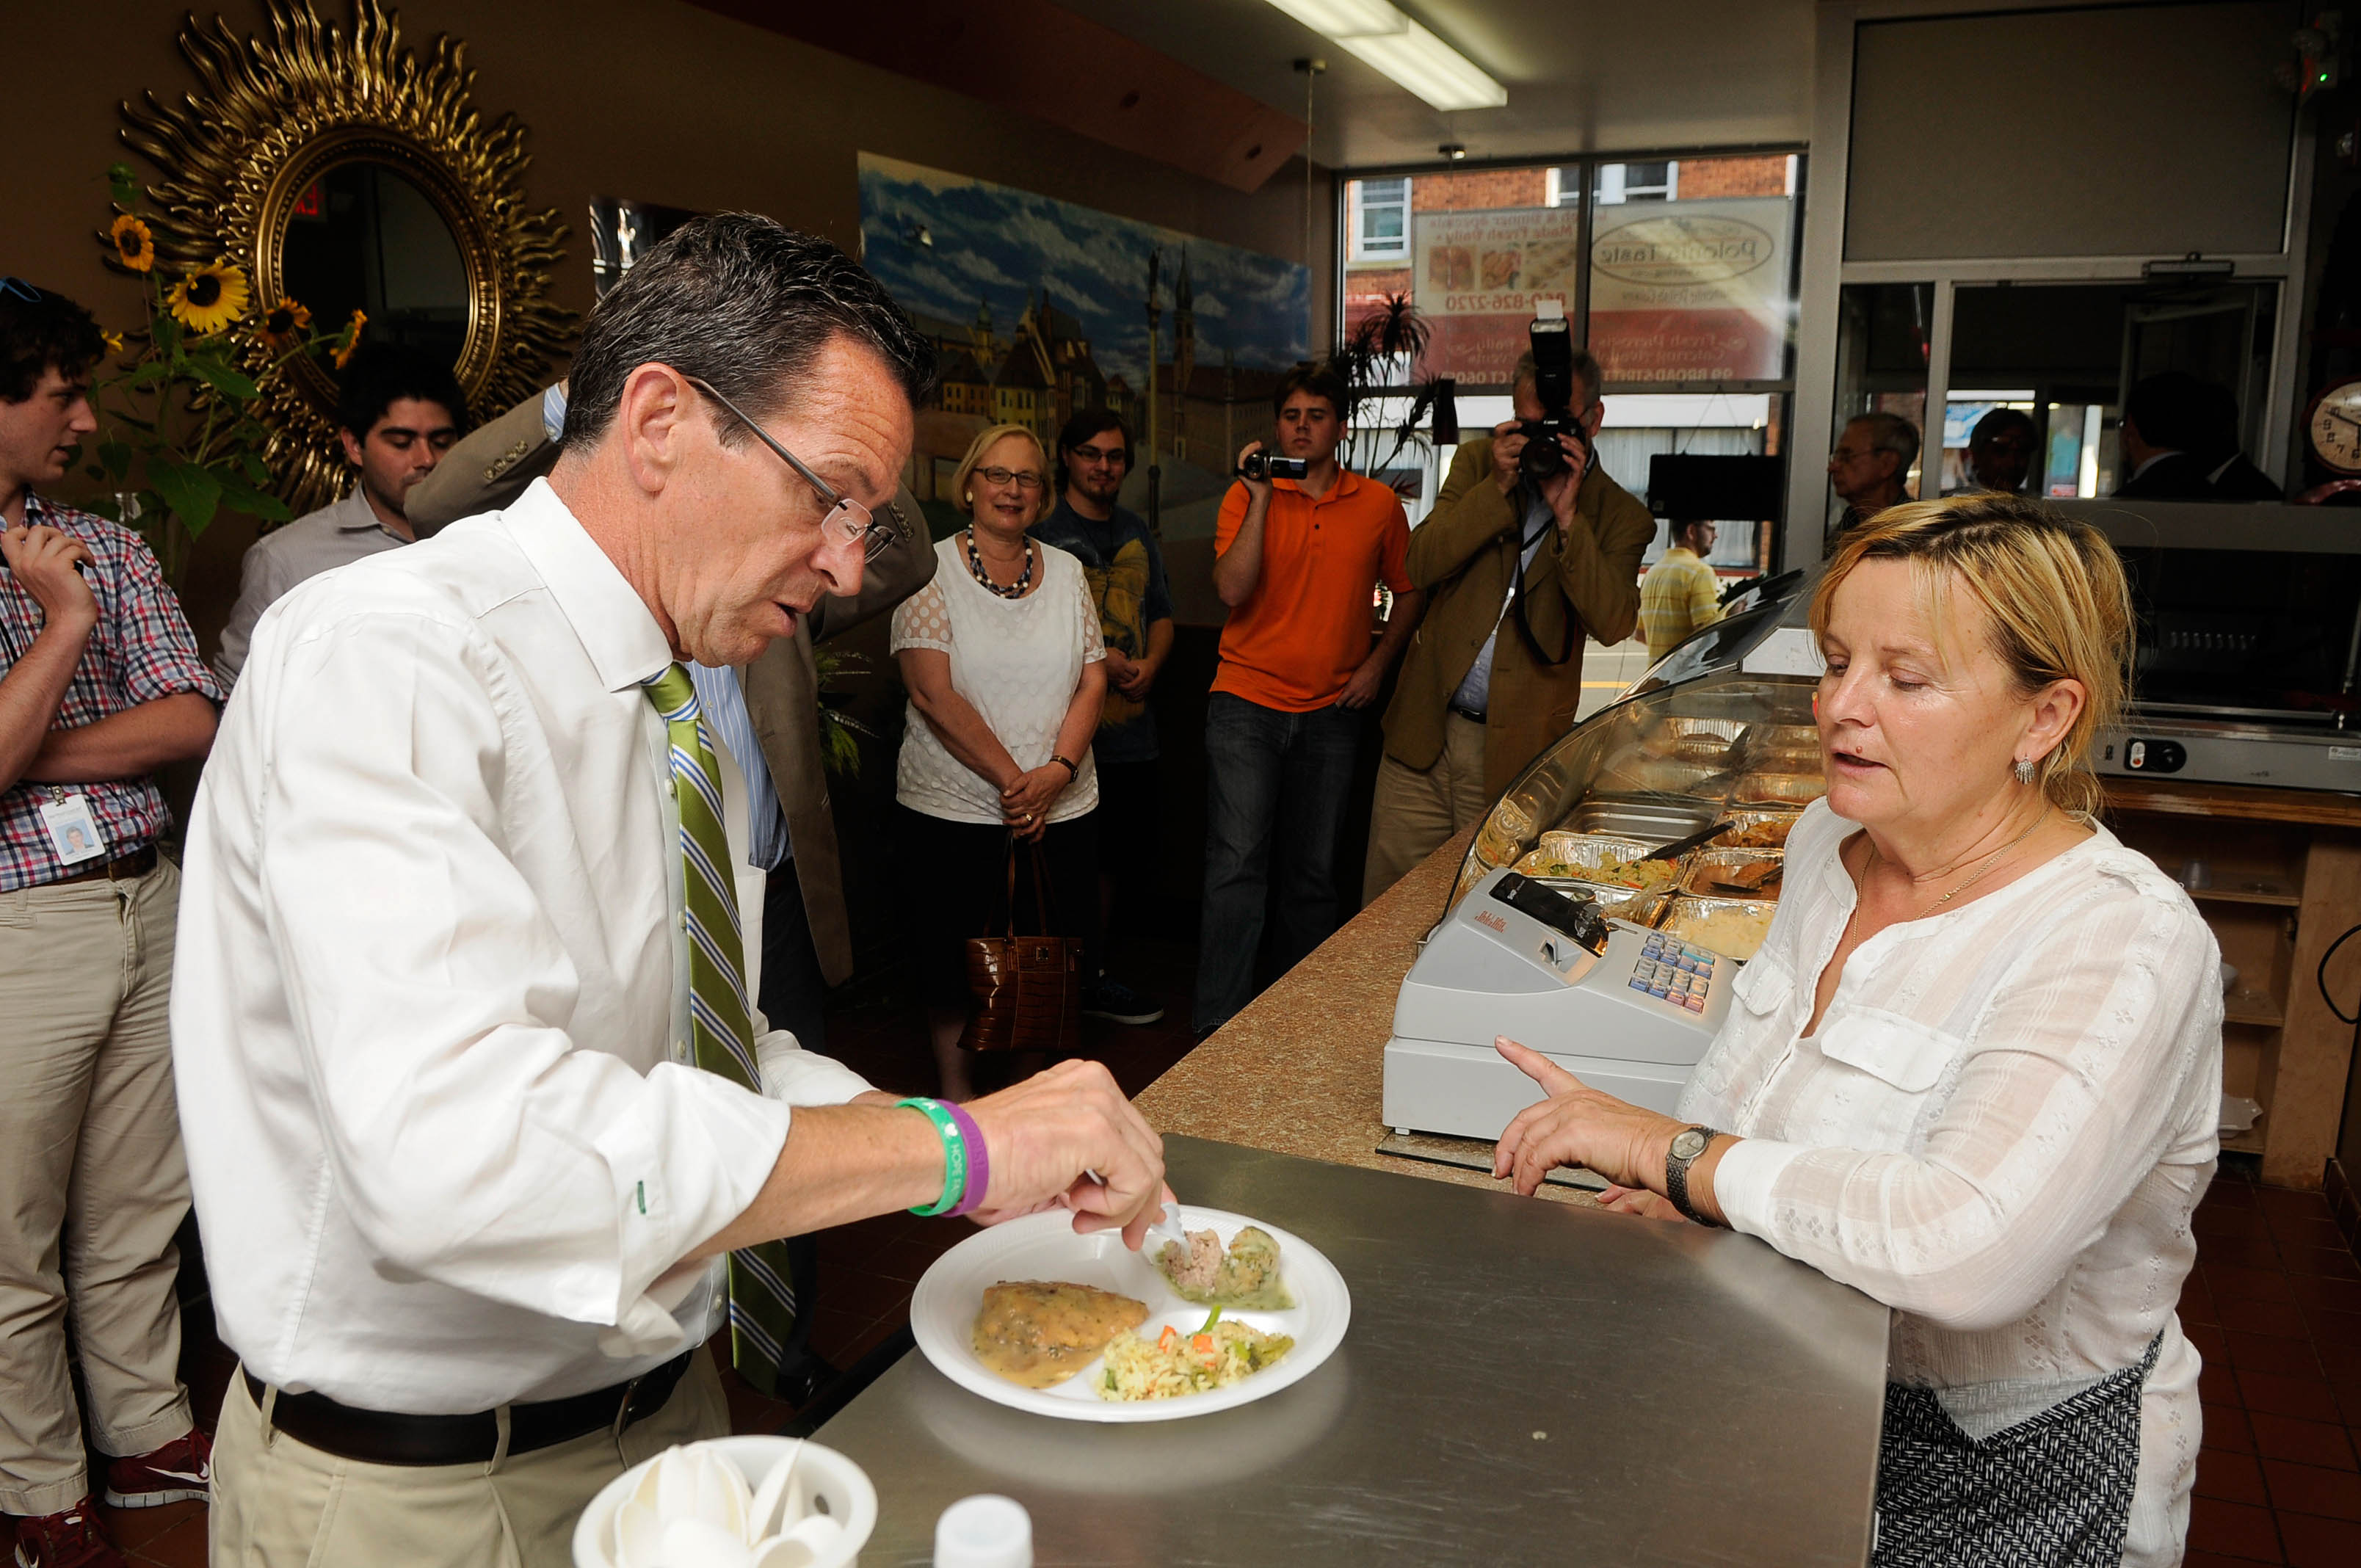 NEW BRITAIN 08/14/14 Gov. Dannel Malloy samples a Polish meatball with dill and chicken marsala with rice during a visit to Polonia Taste on Broad Street in New Britain Thursday evening as his reelection campaign gets underway. Malloy spent time visiting businesses along Broad Street in the city's Polish neighborhood. Bartkowicz mentioned that Malloy's Republican opponent, Tom Foley, also sampled the chicken Marsala and rice during a recent campaign visit..   CLOE POISSON|cpoisson@courant.com